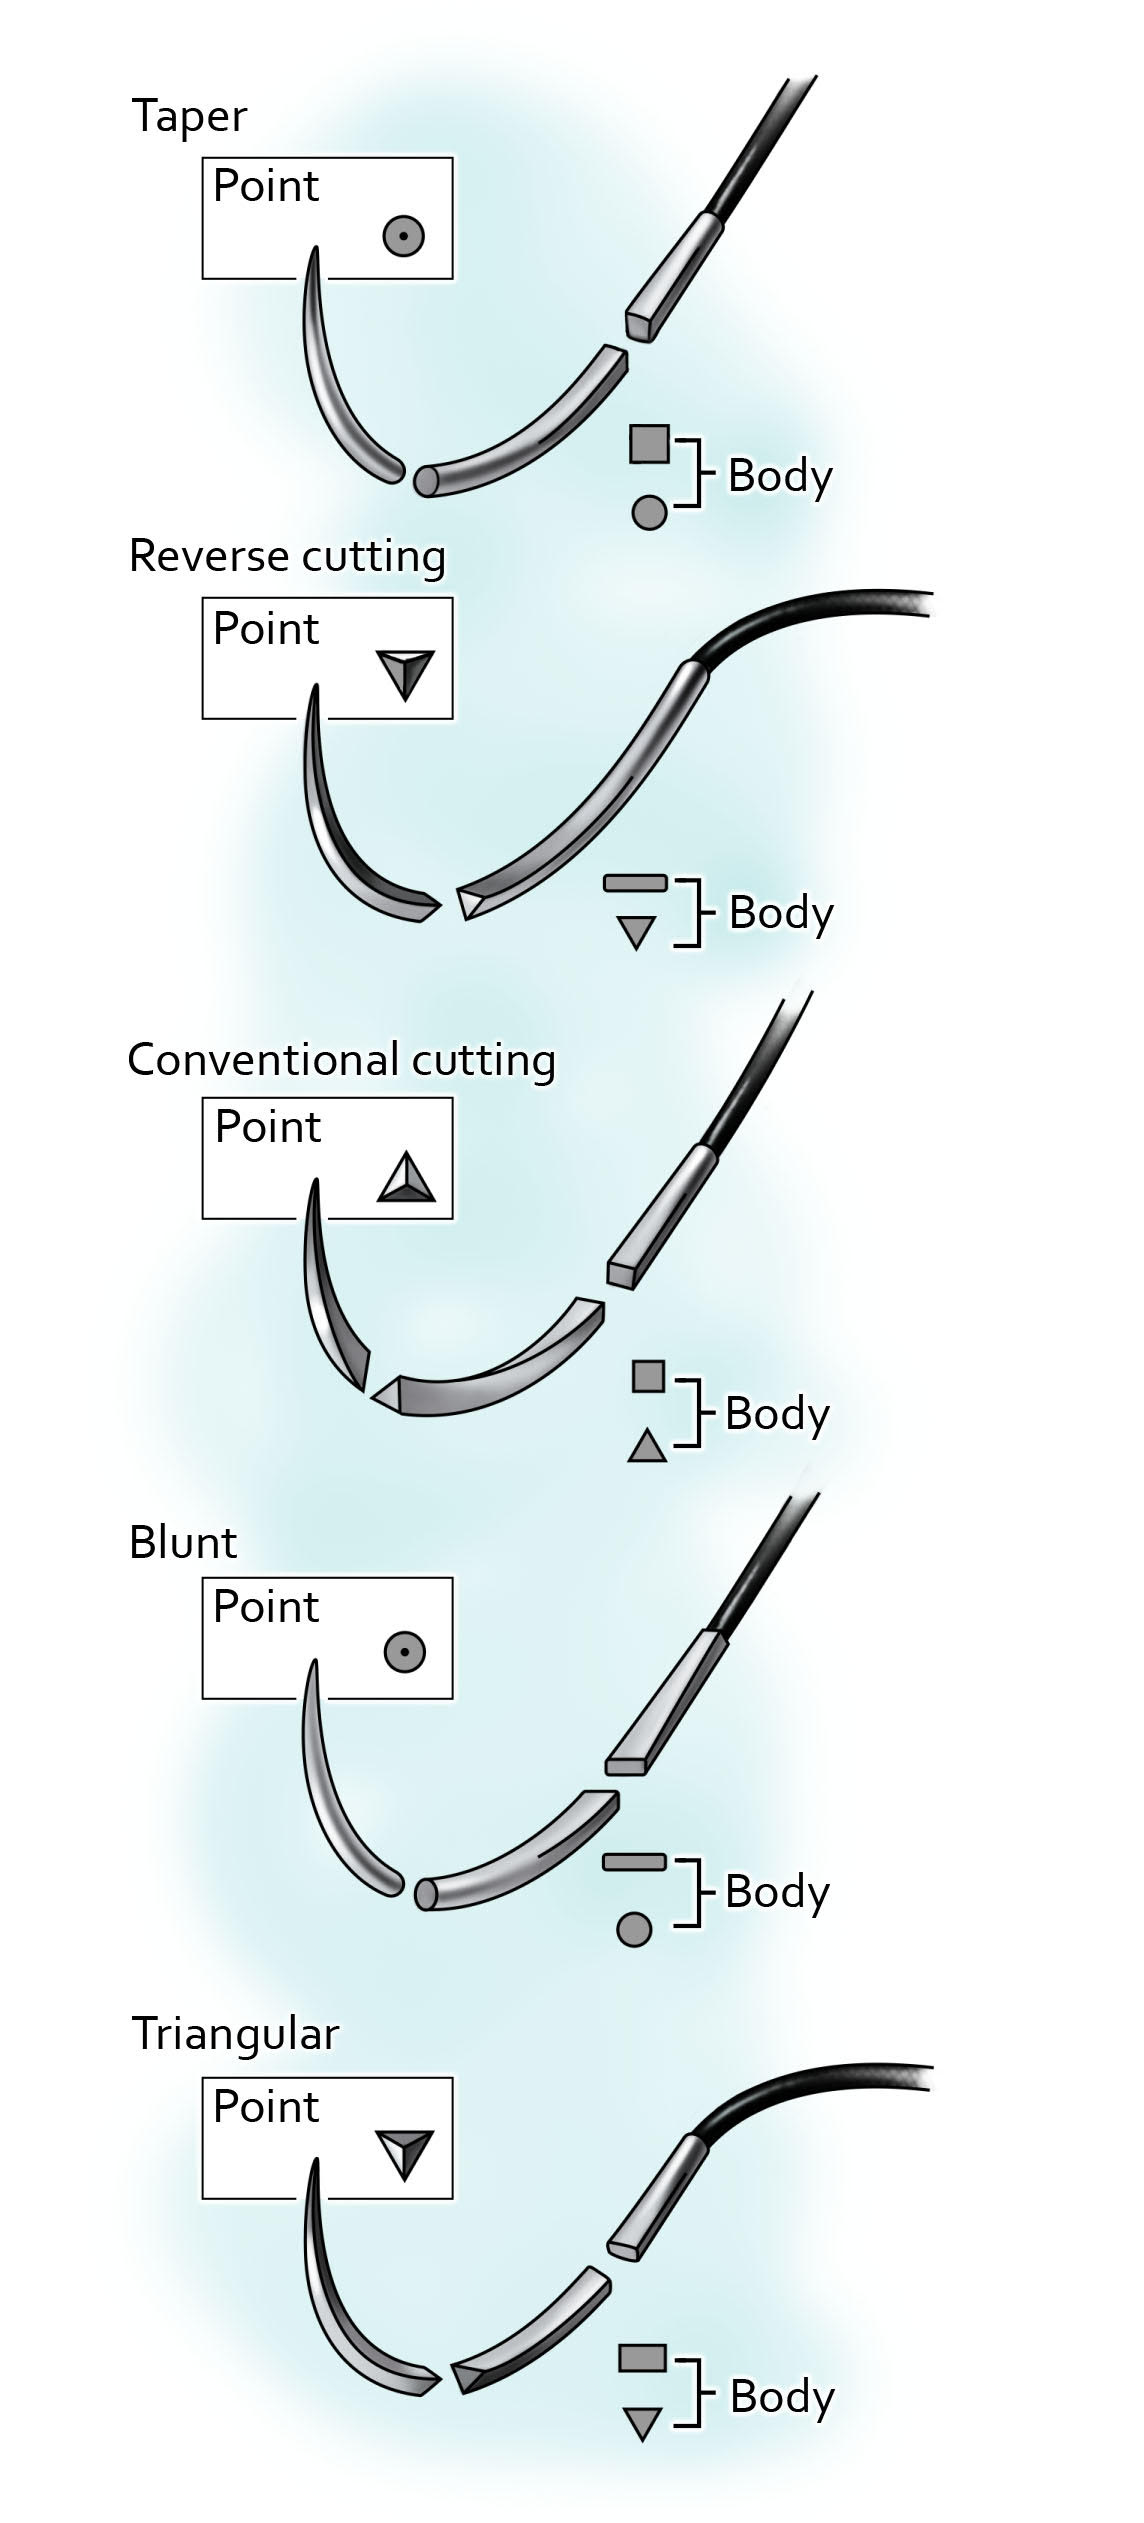 Figure 3: Needle point types: taper point, reverse cutting, conventional cutting, blunt and triangular, respectively.